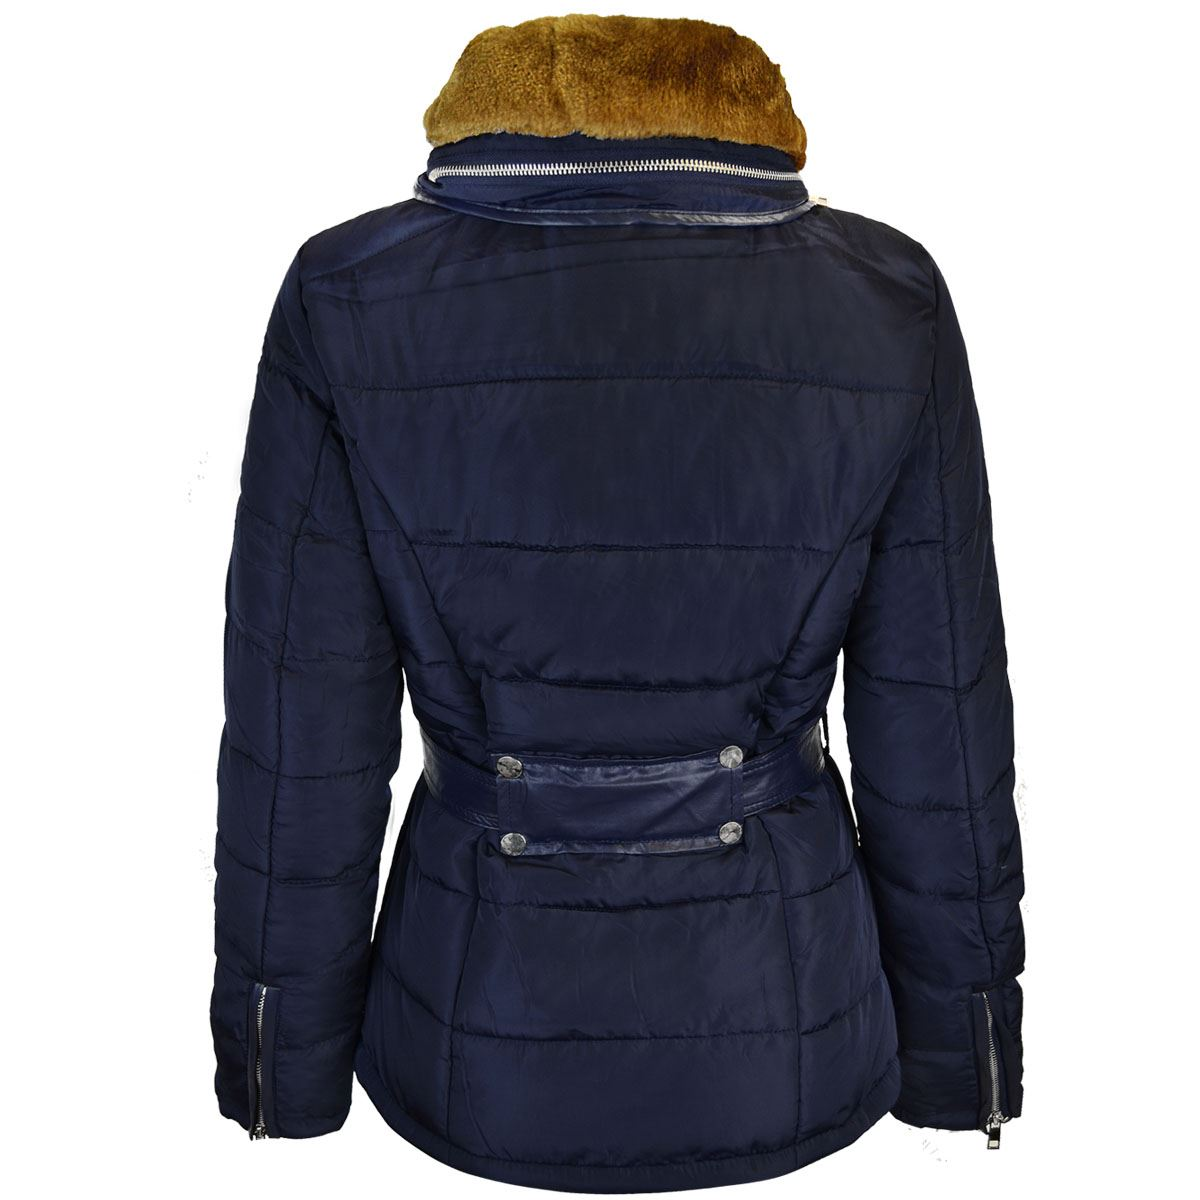 Hooded Quilted Coat with High Collar and Faux Suede Trim Keeping this secret is one of the ways we keep bringing you top designers and brands at great prices. .